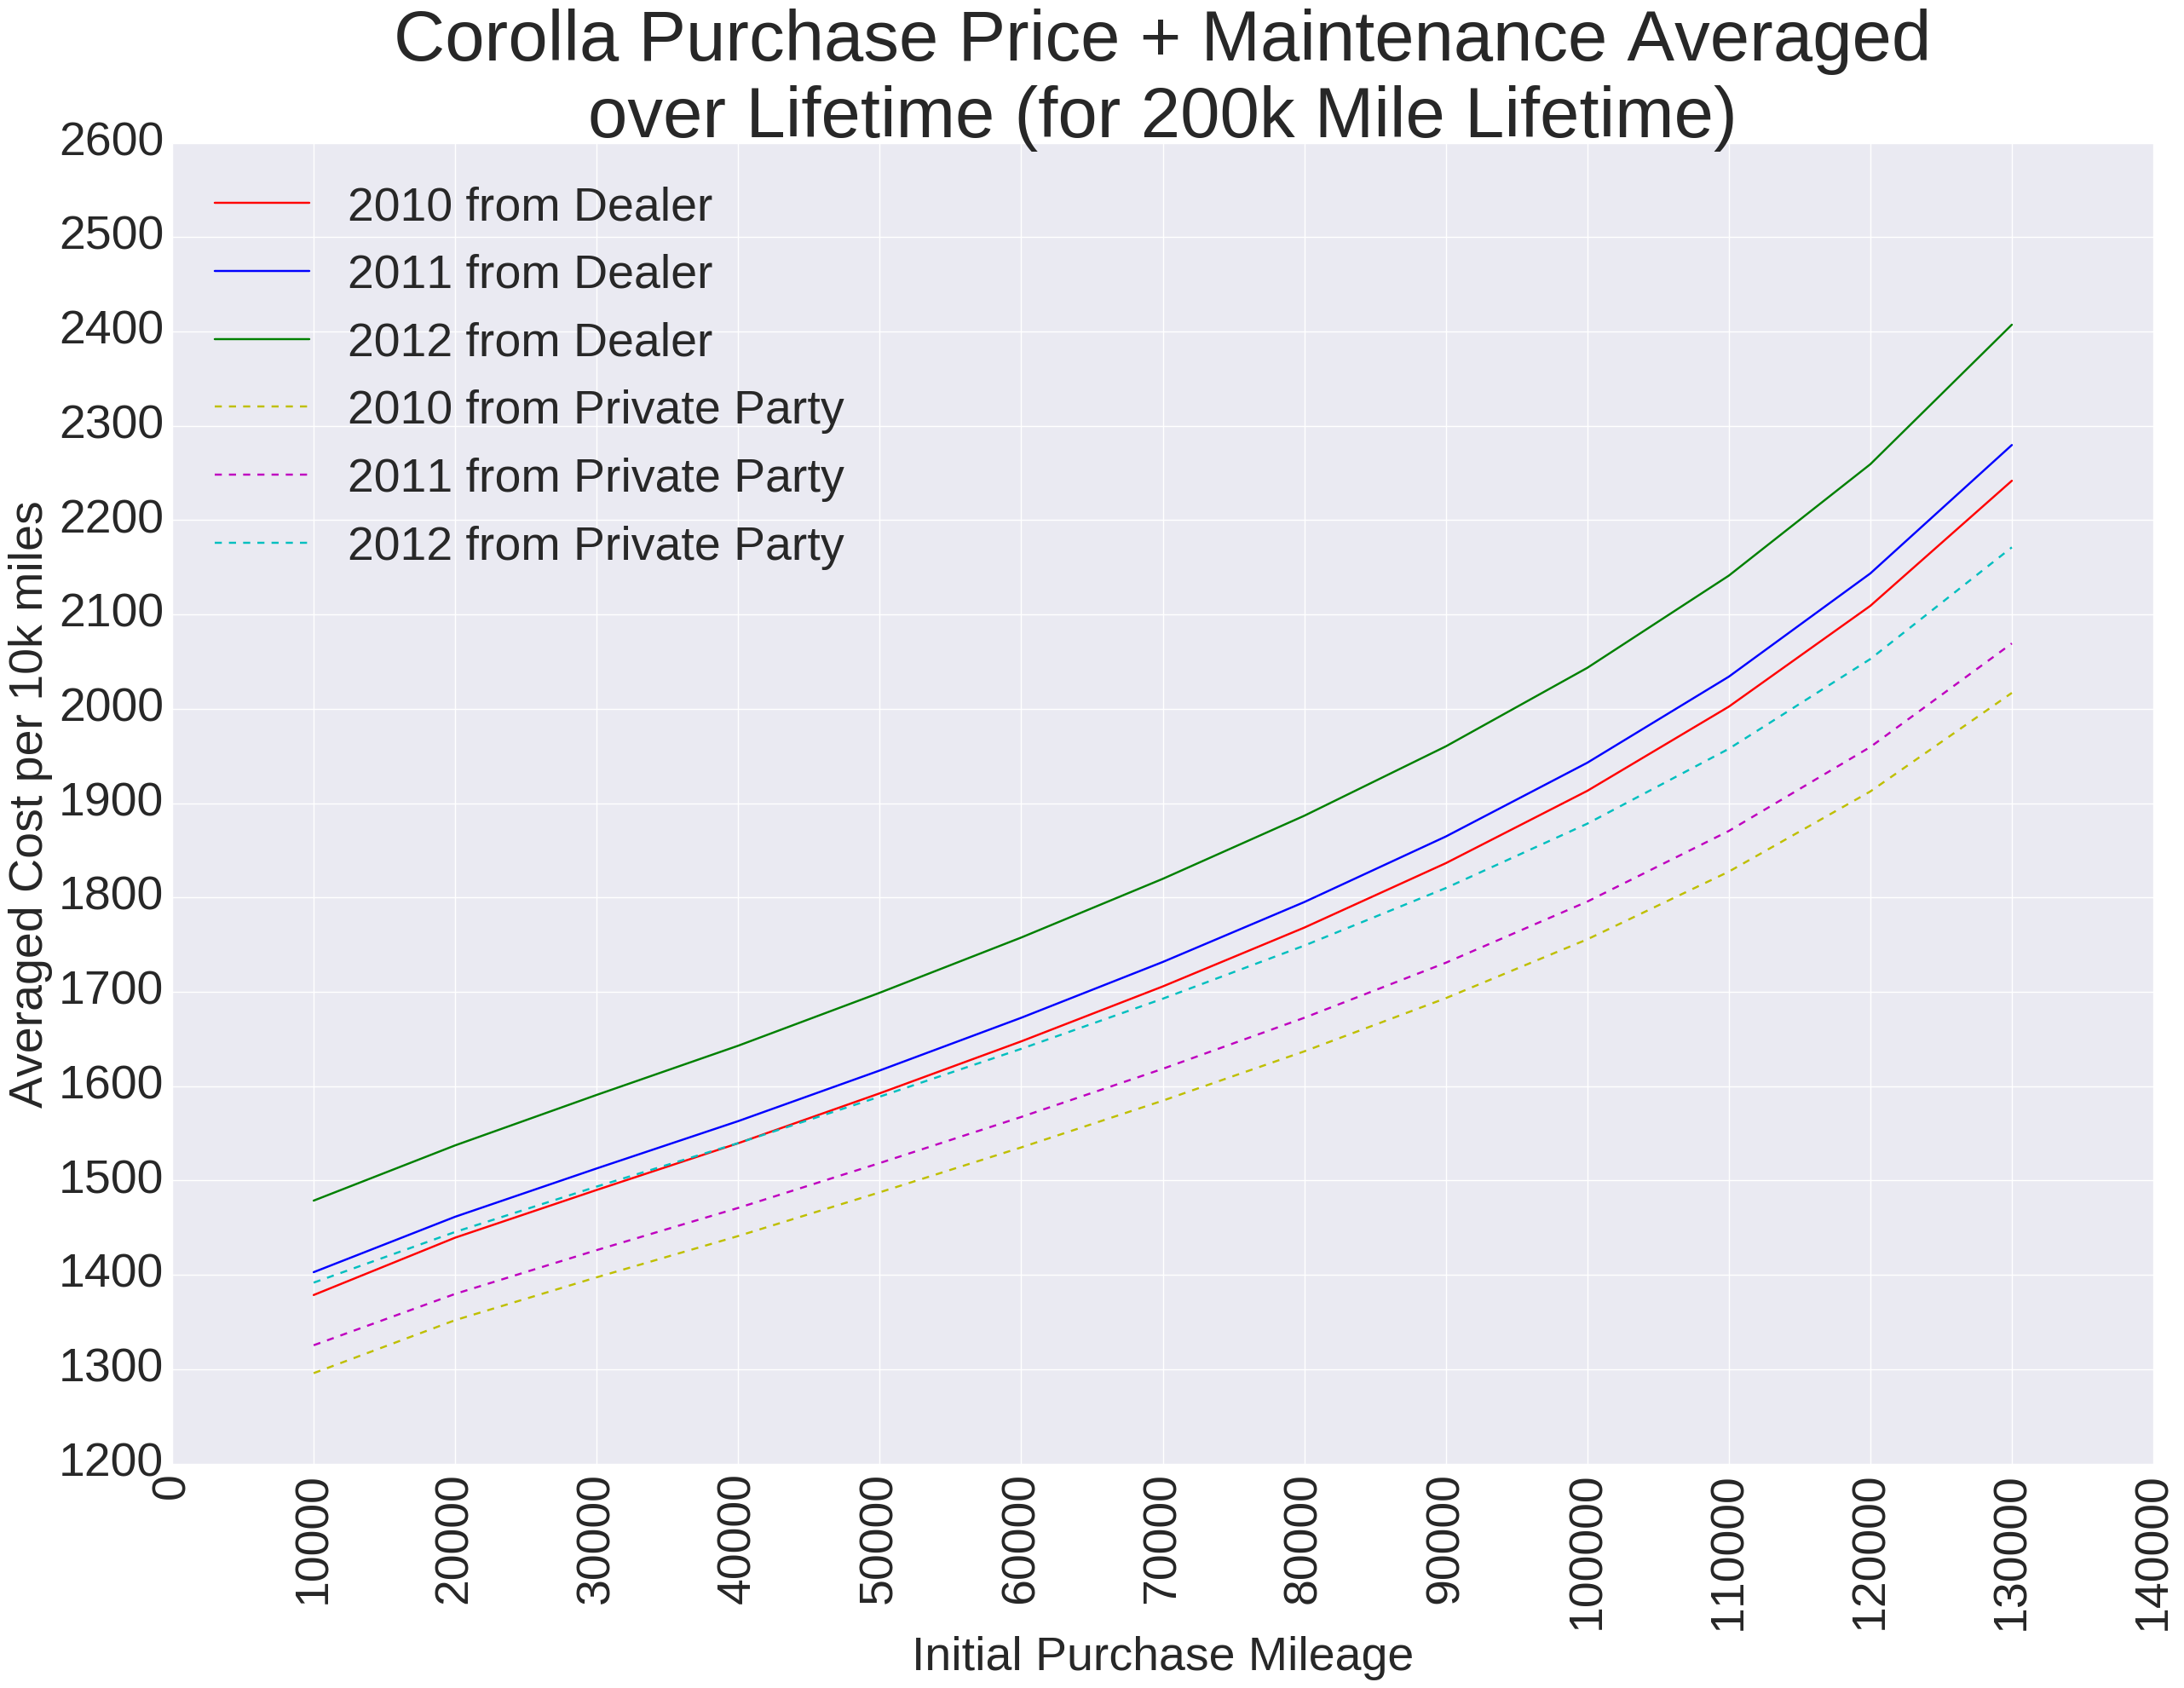 purchase price and maintenance costs averaged over the car s lifetime are cheaper if you a lower mileage car here is an example of toyota corolla